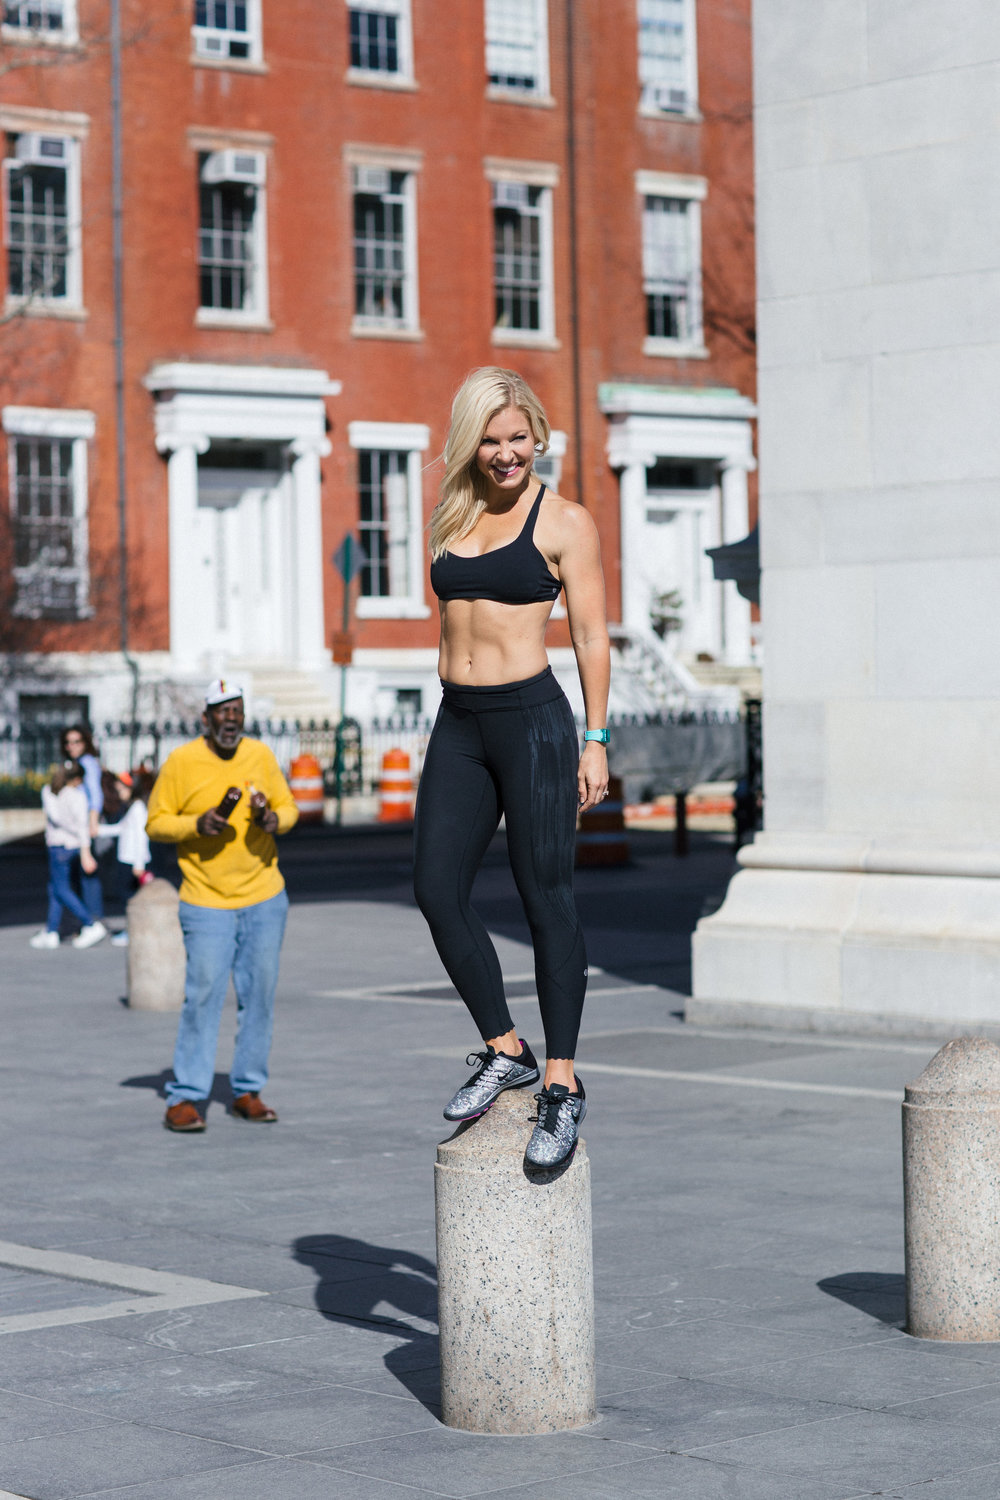 Anna Kooiman annakooiman.com fitness travel lifestyle fashion style television entertainment news